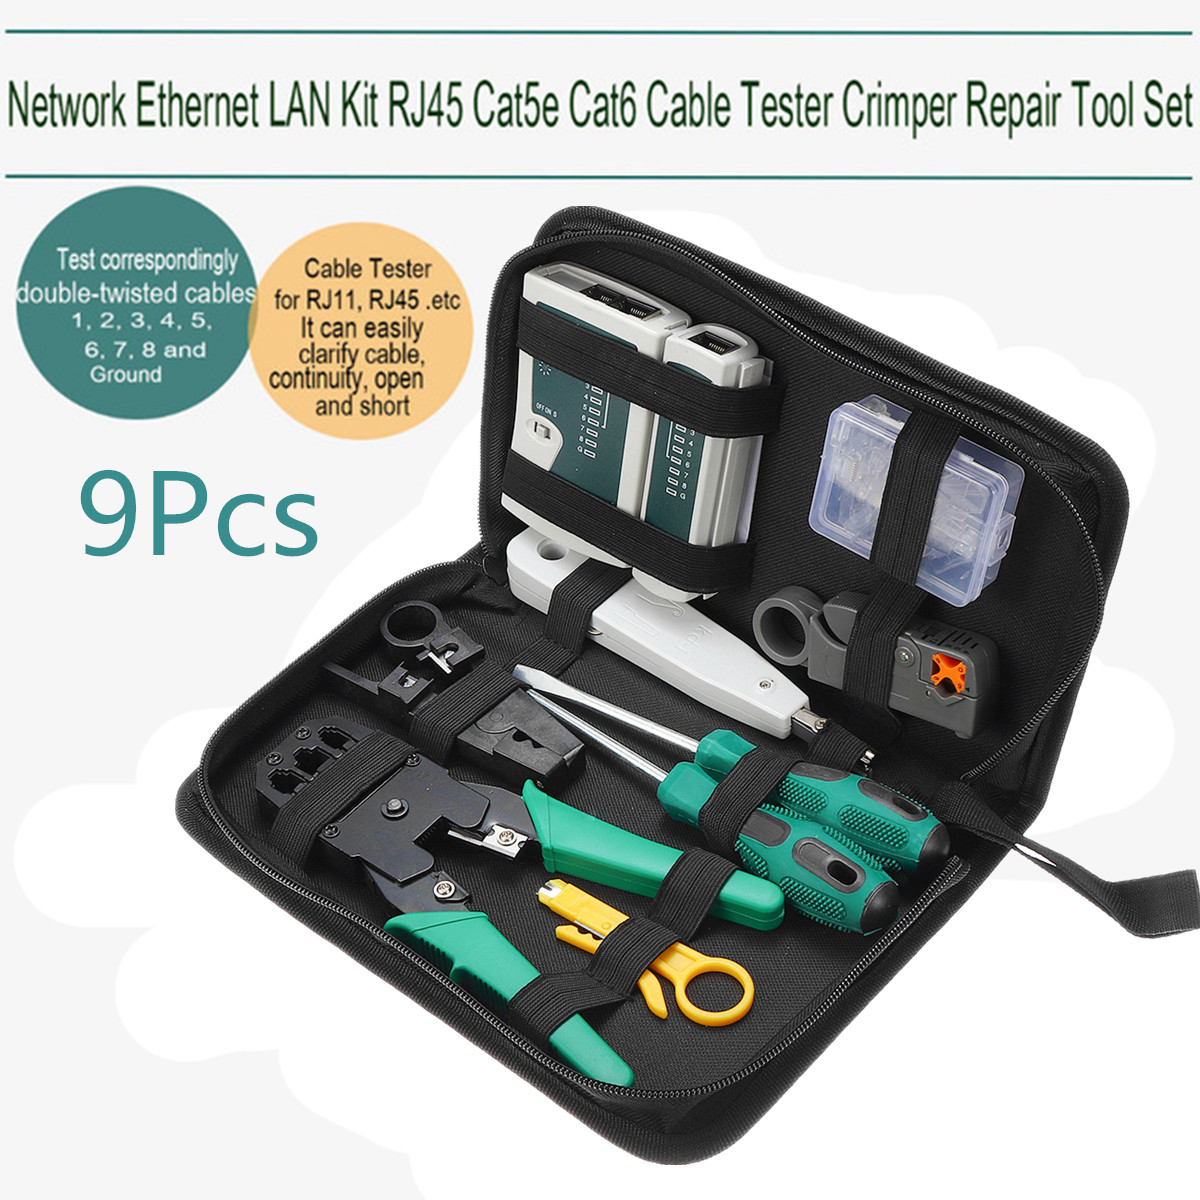 LAN Network Crimper Plier Hand Tool Kit Repair Cable Tester Cat5 RJ45 RJ11 RJ12 Stripping Cable Make Ethernet Connector Test yoc hot network lan cable tester rj45 rj11 rj12 cat5 crimper